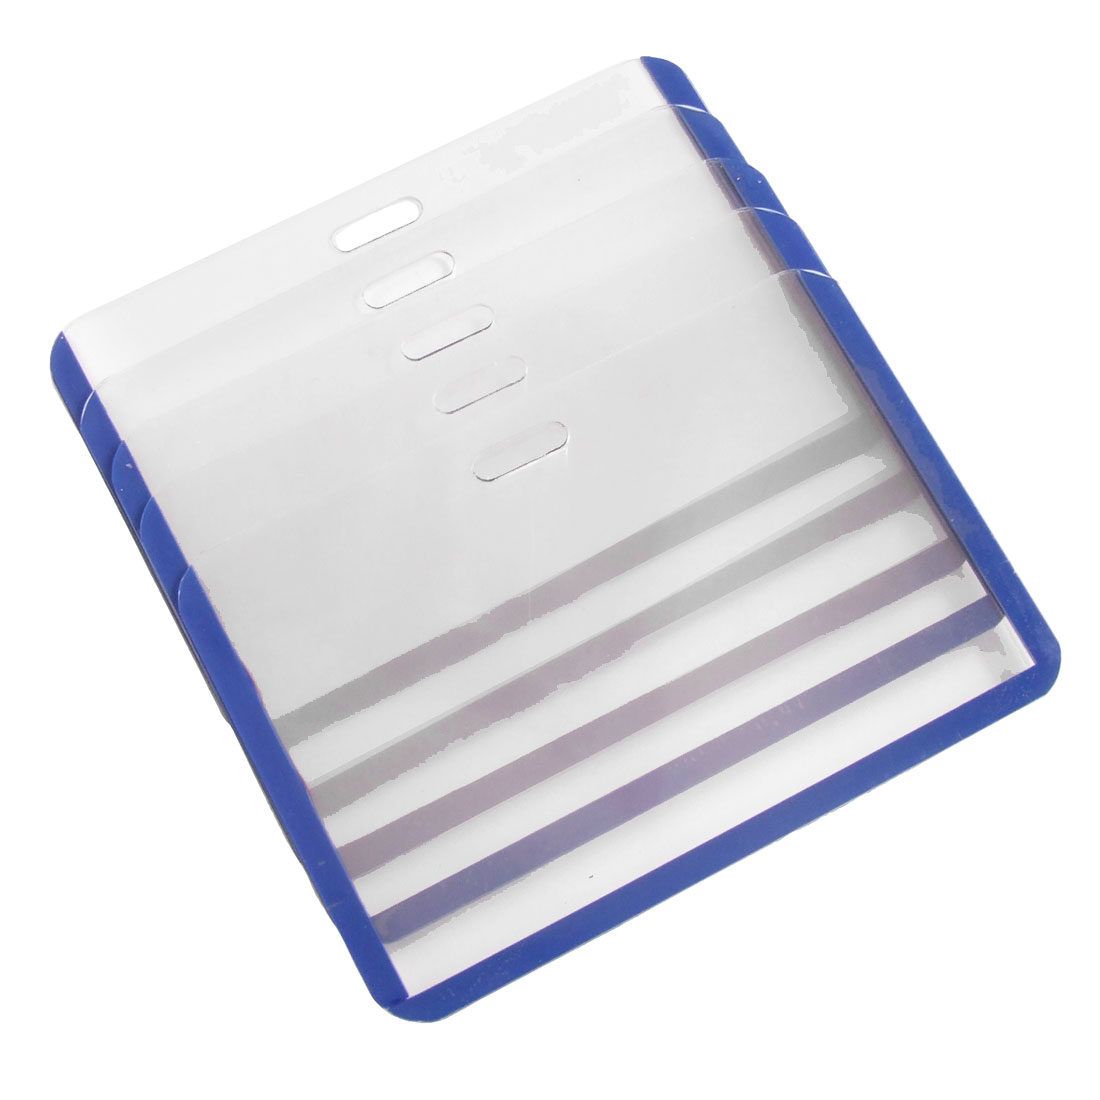 10 Pcs Blue Clear Plastic Horizontal Name Card ID Badge Holder Protector Pouch